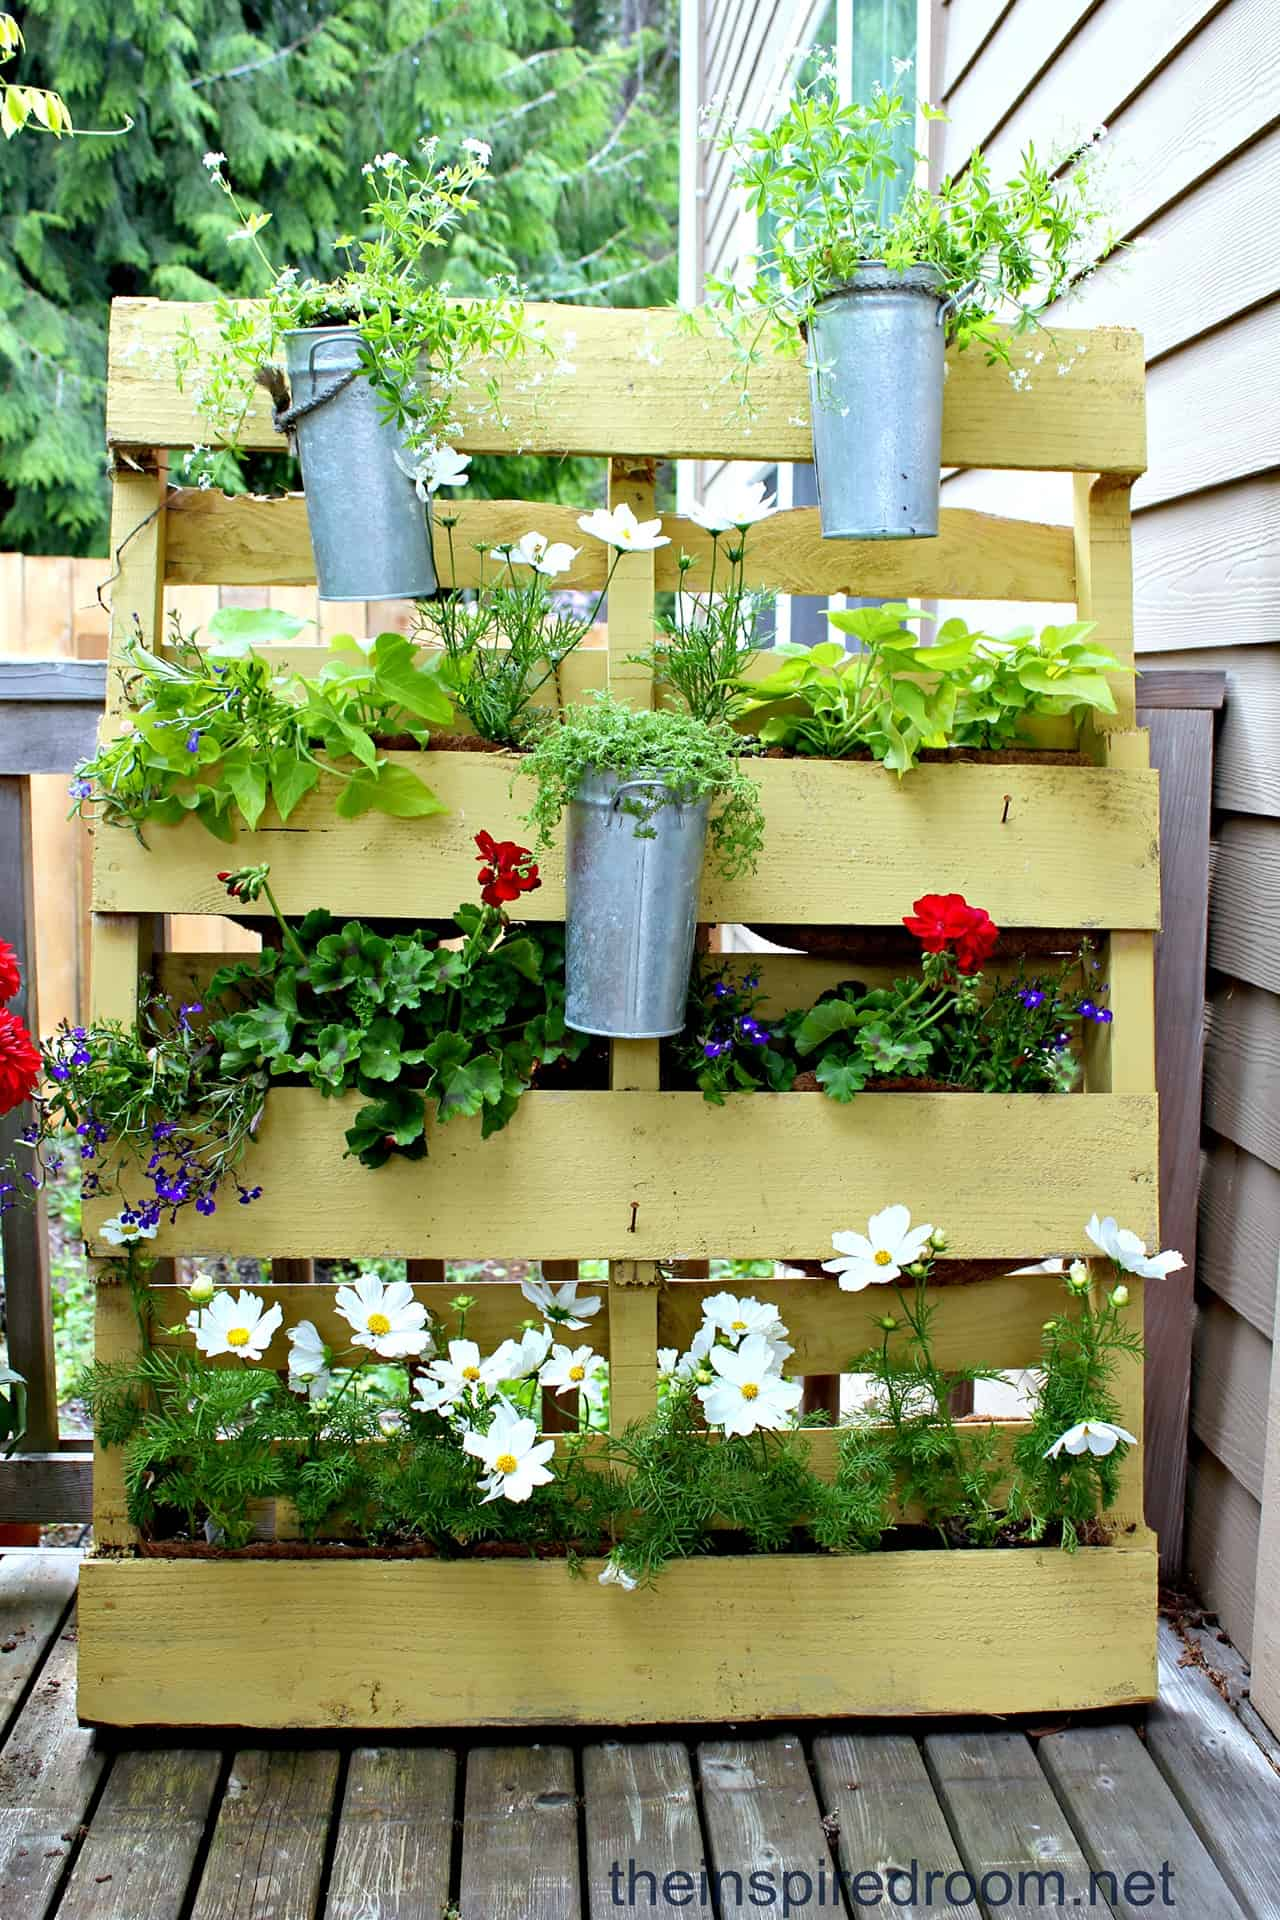 09-take-pallet-gardening-vertical-with-this-simple-design-vertical-gardens